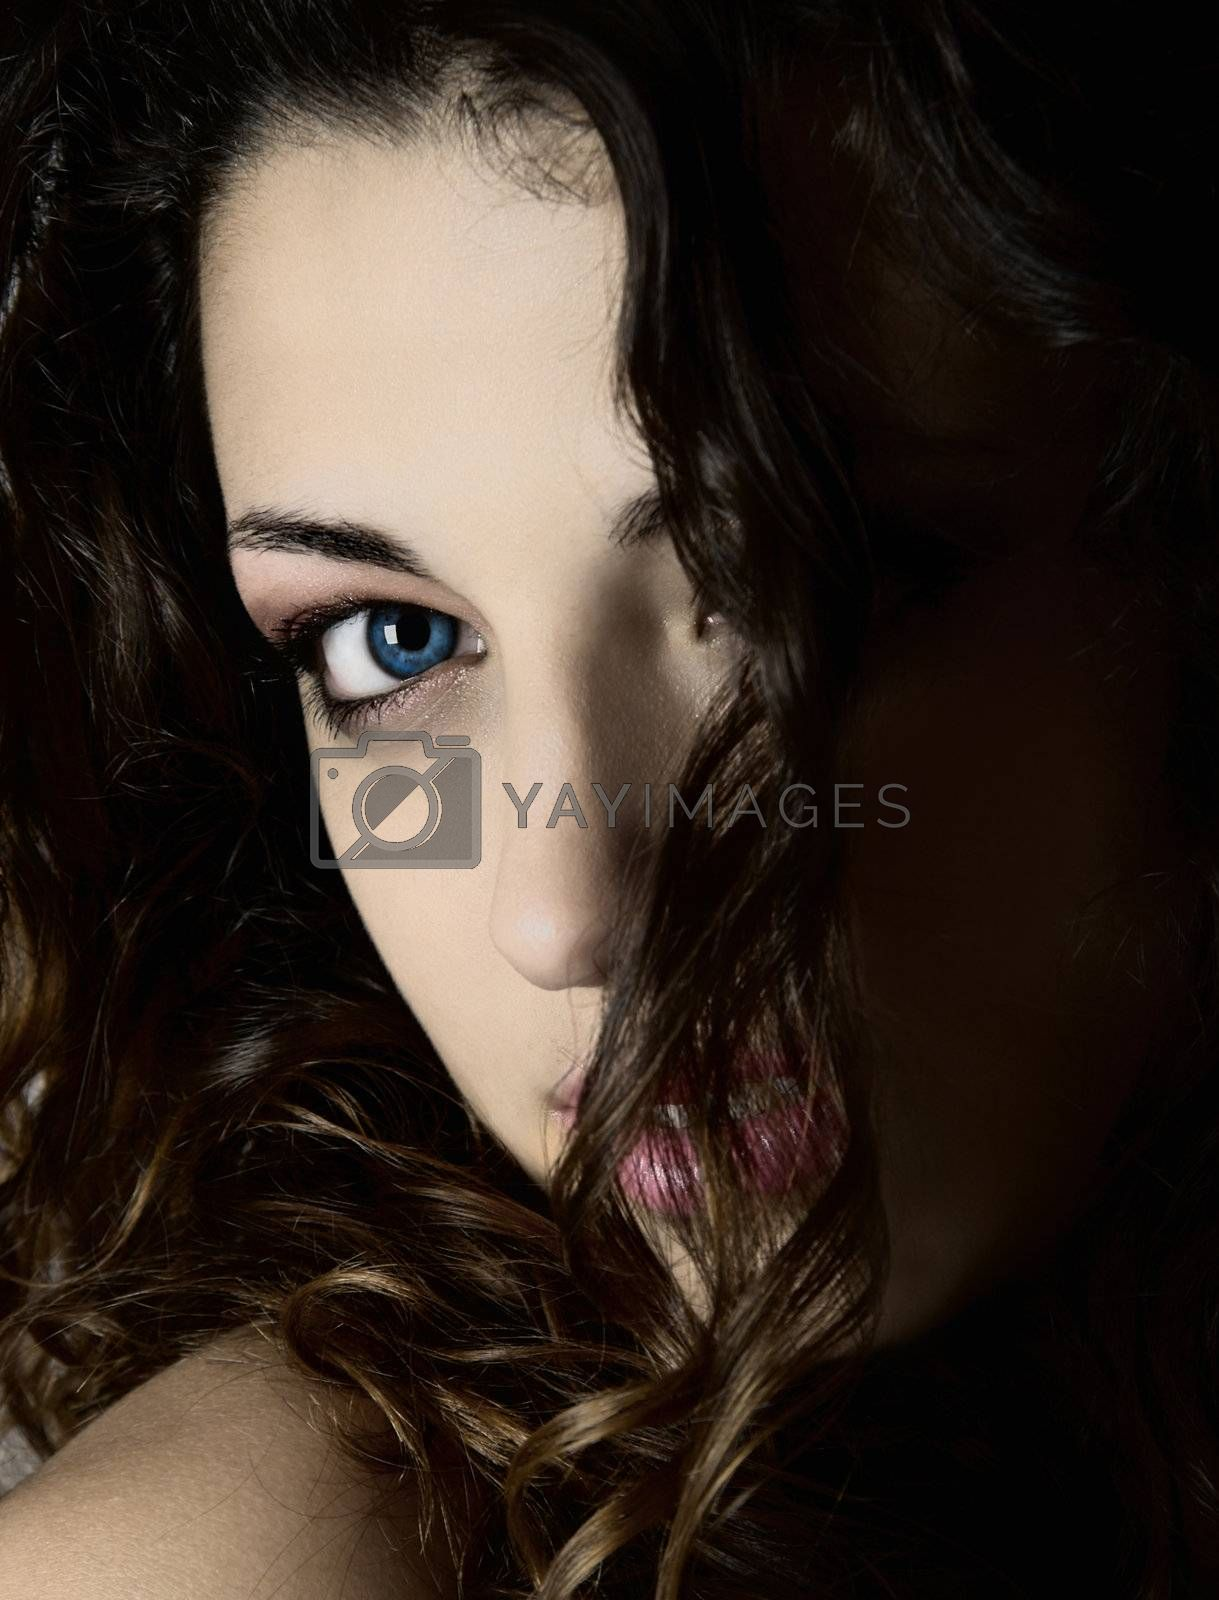 Close-up portrait of a young woman with beautiful blue eyes